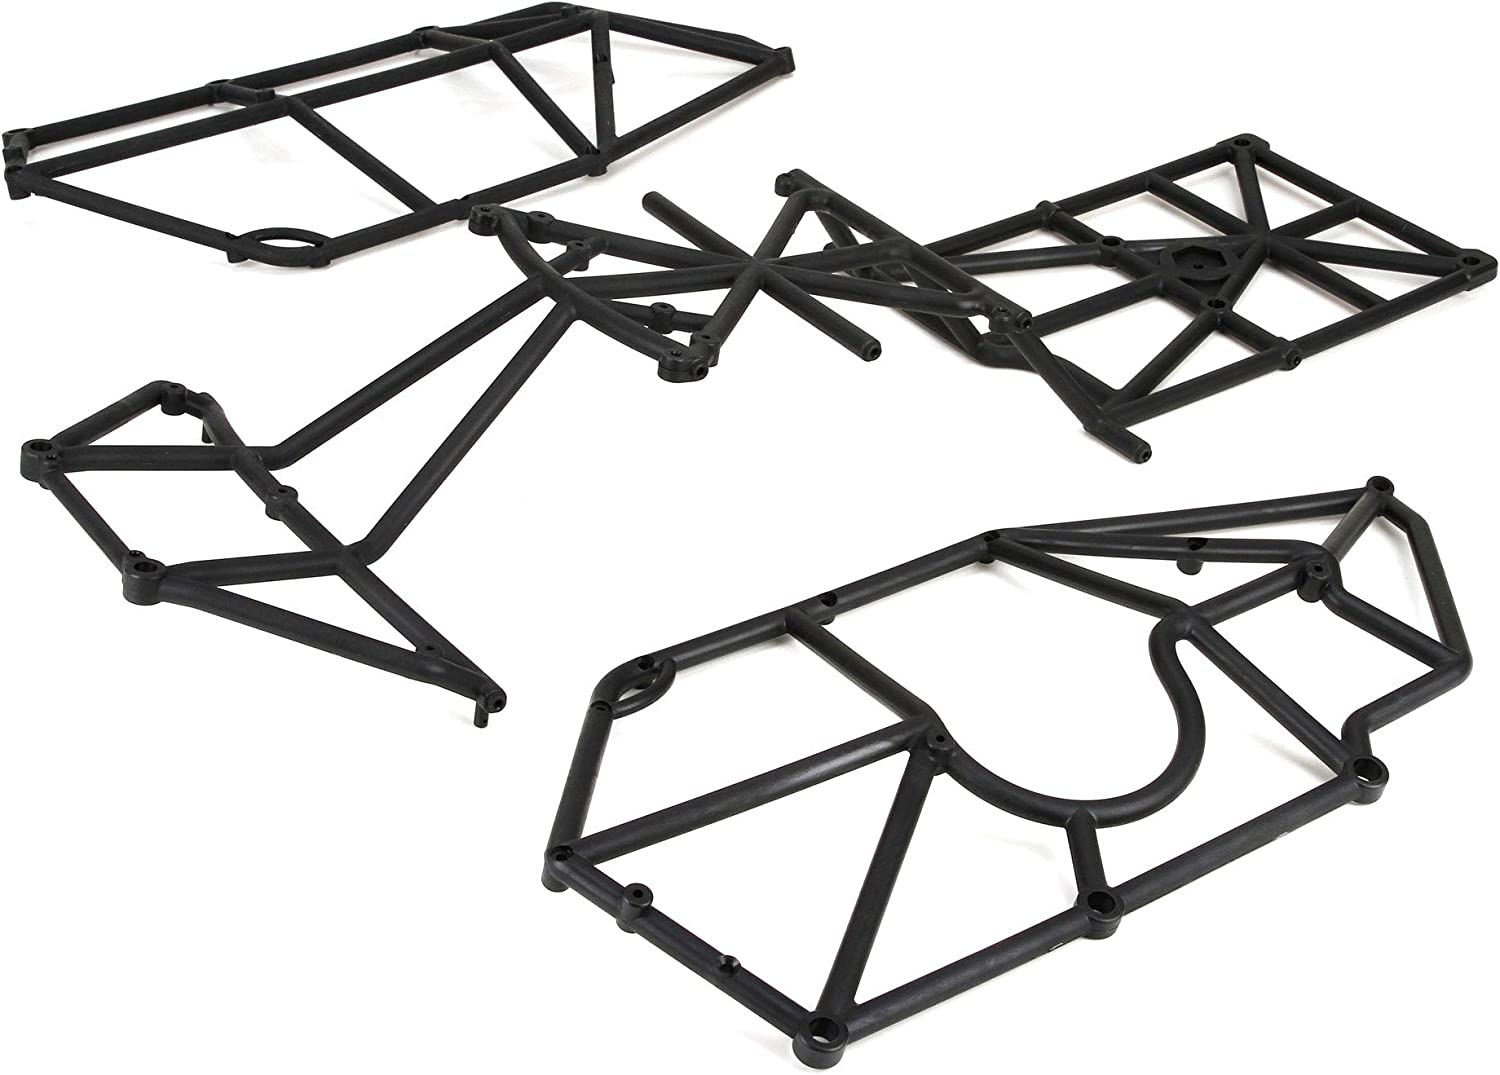 Losi Roll Cage Complete: 1:5 High material DB Regular discount XL LOS251007 4wd